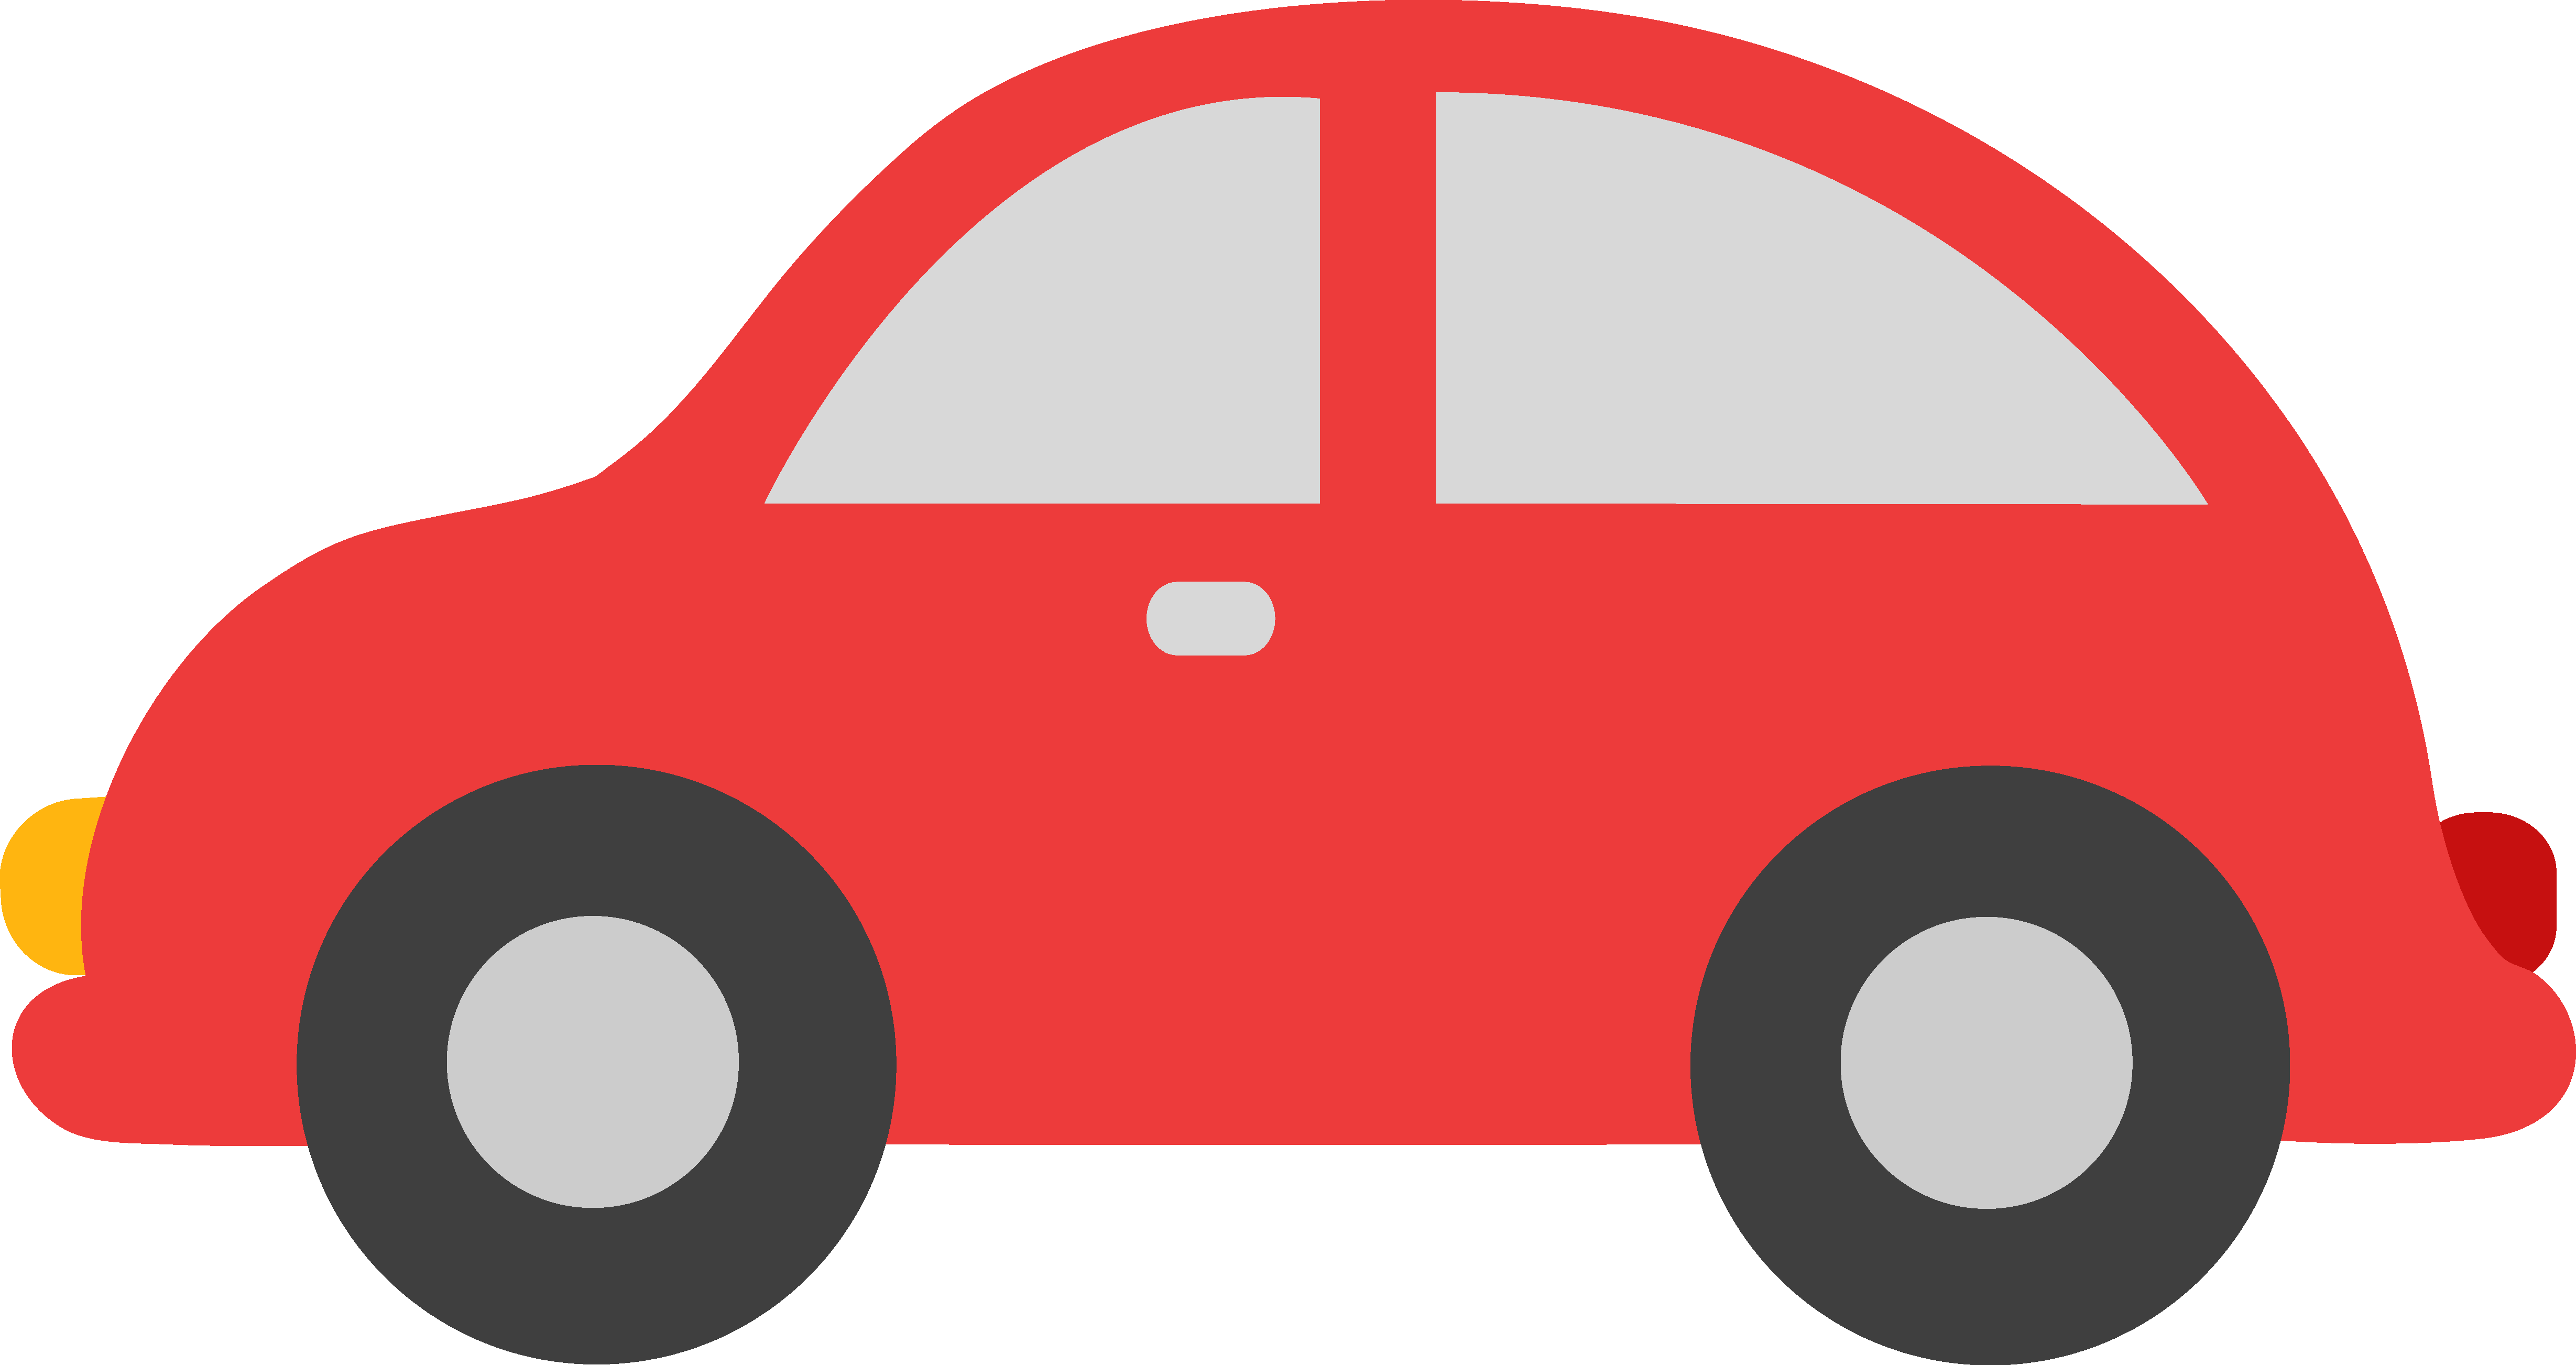 Red Toy Car Clipart - Free Clip Art